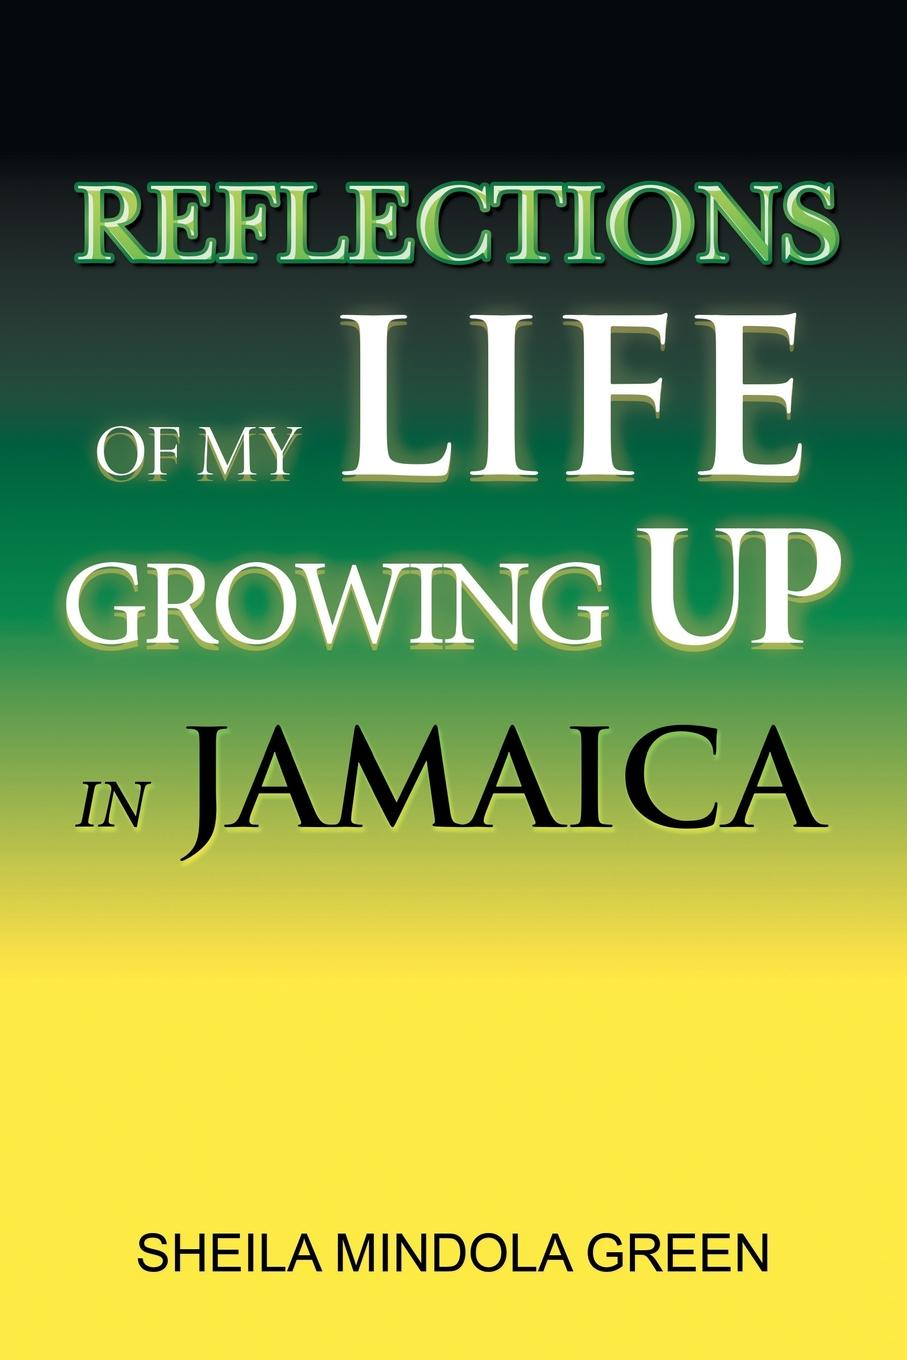 SHEILA MINDOLA GREEN Reflections of My Life Growing Up in Jamaica